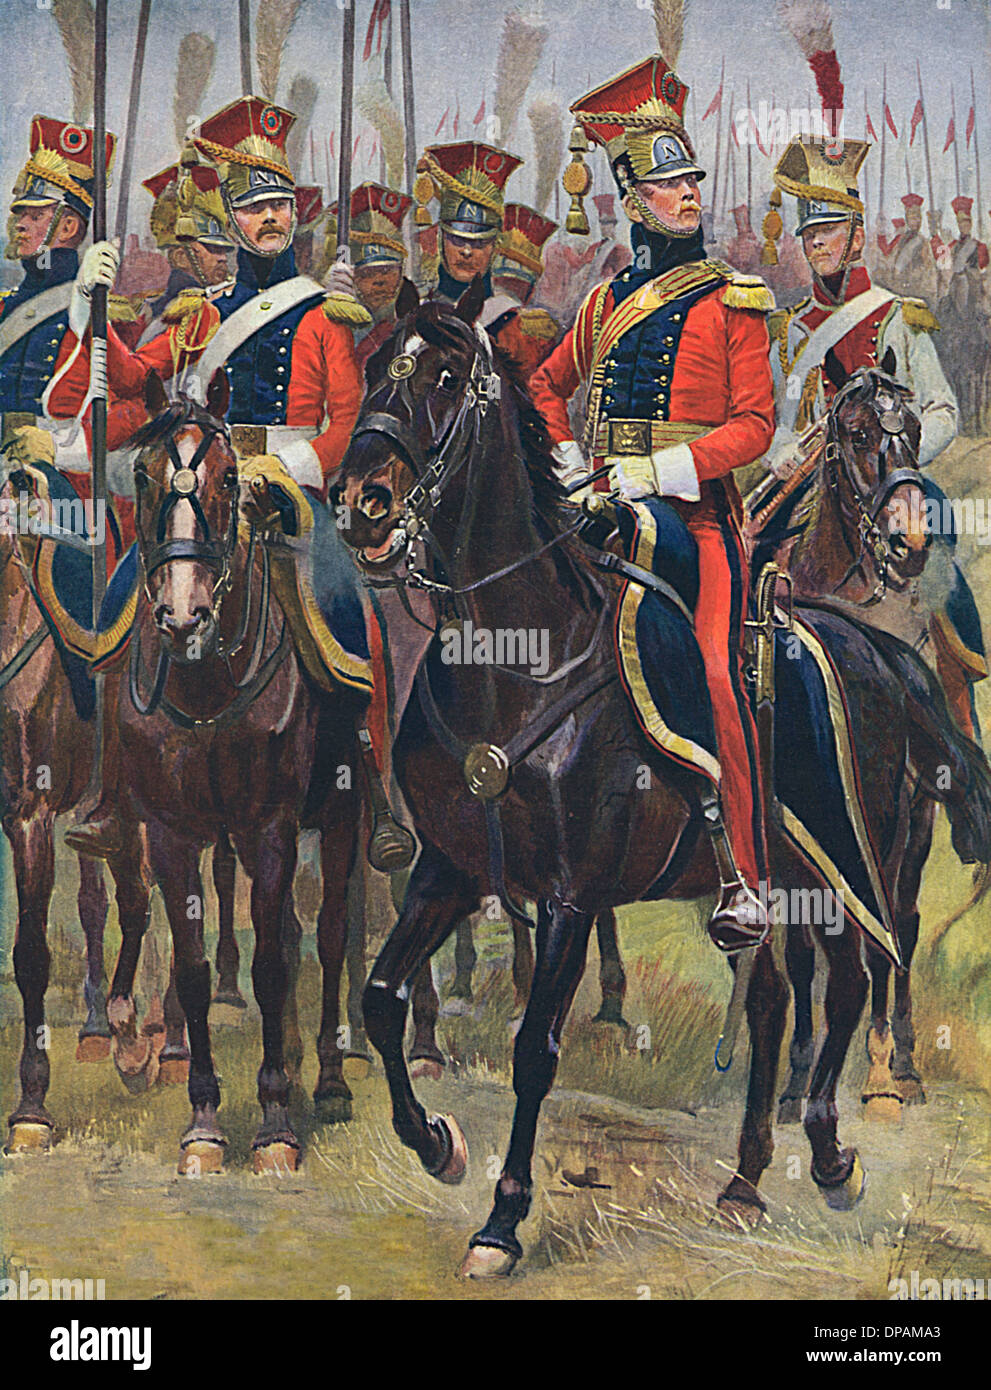 FRENCH CAVALRY 1805 - Stock Image